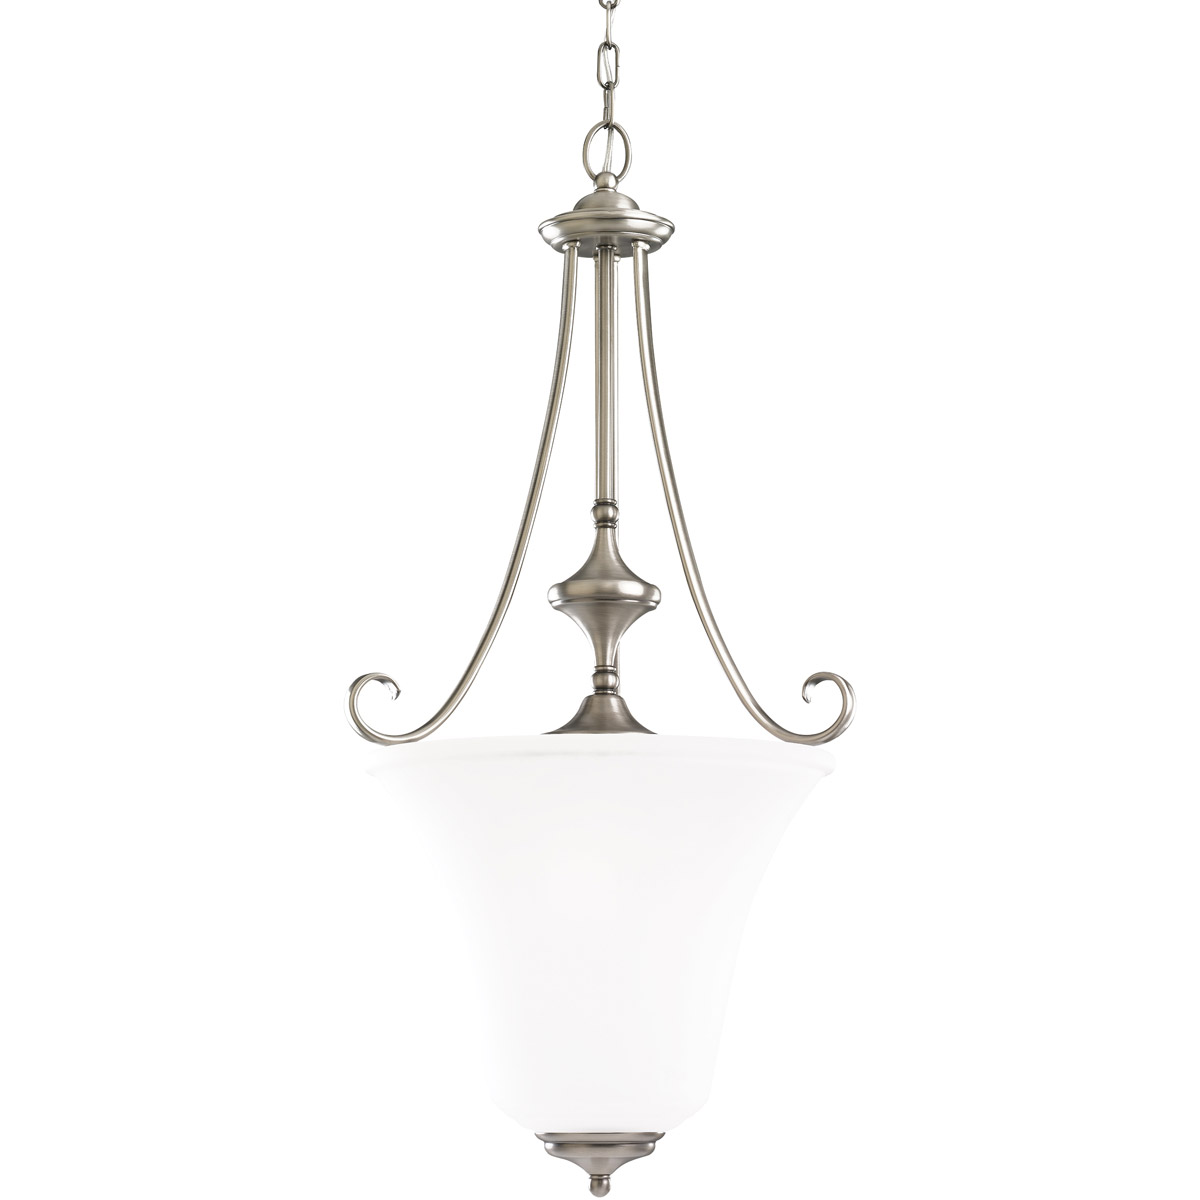 Sea Gull 51380-965 Parkview 3 Light 18 inch Antique Brushed Nickel Foyer Pendant Ceiling Light in Satin Etched Glass photo